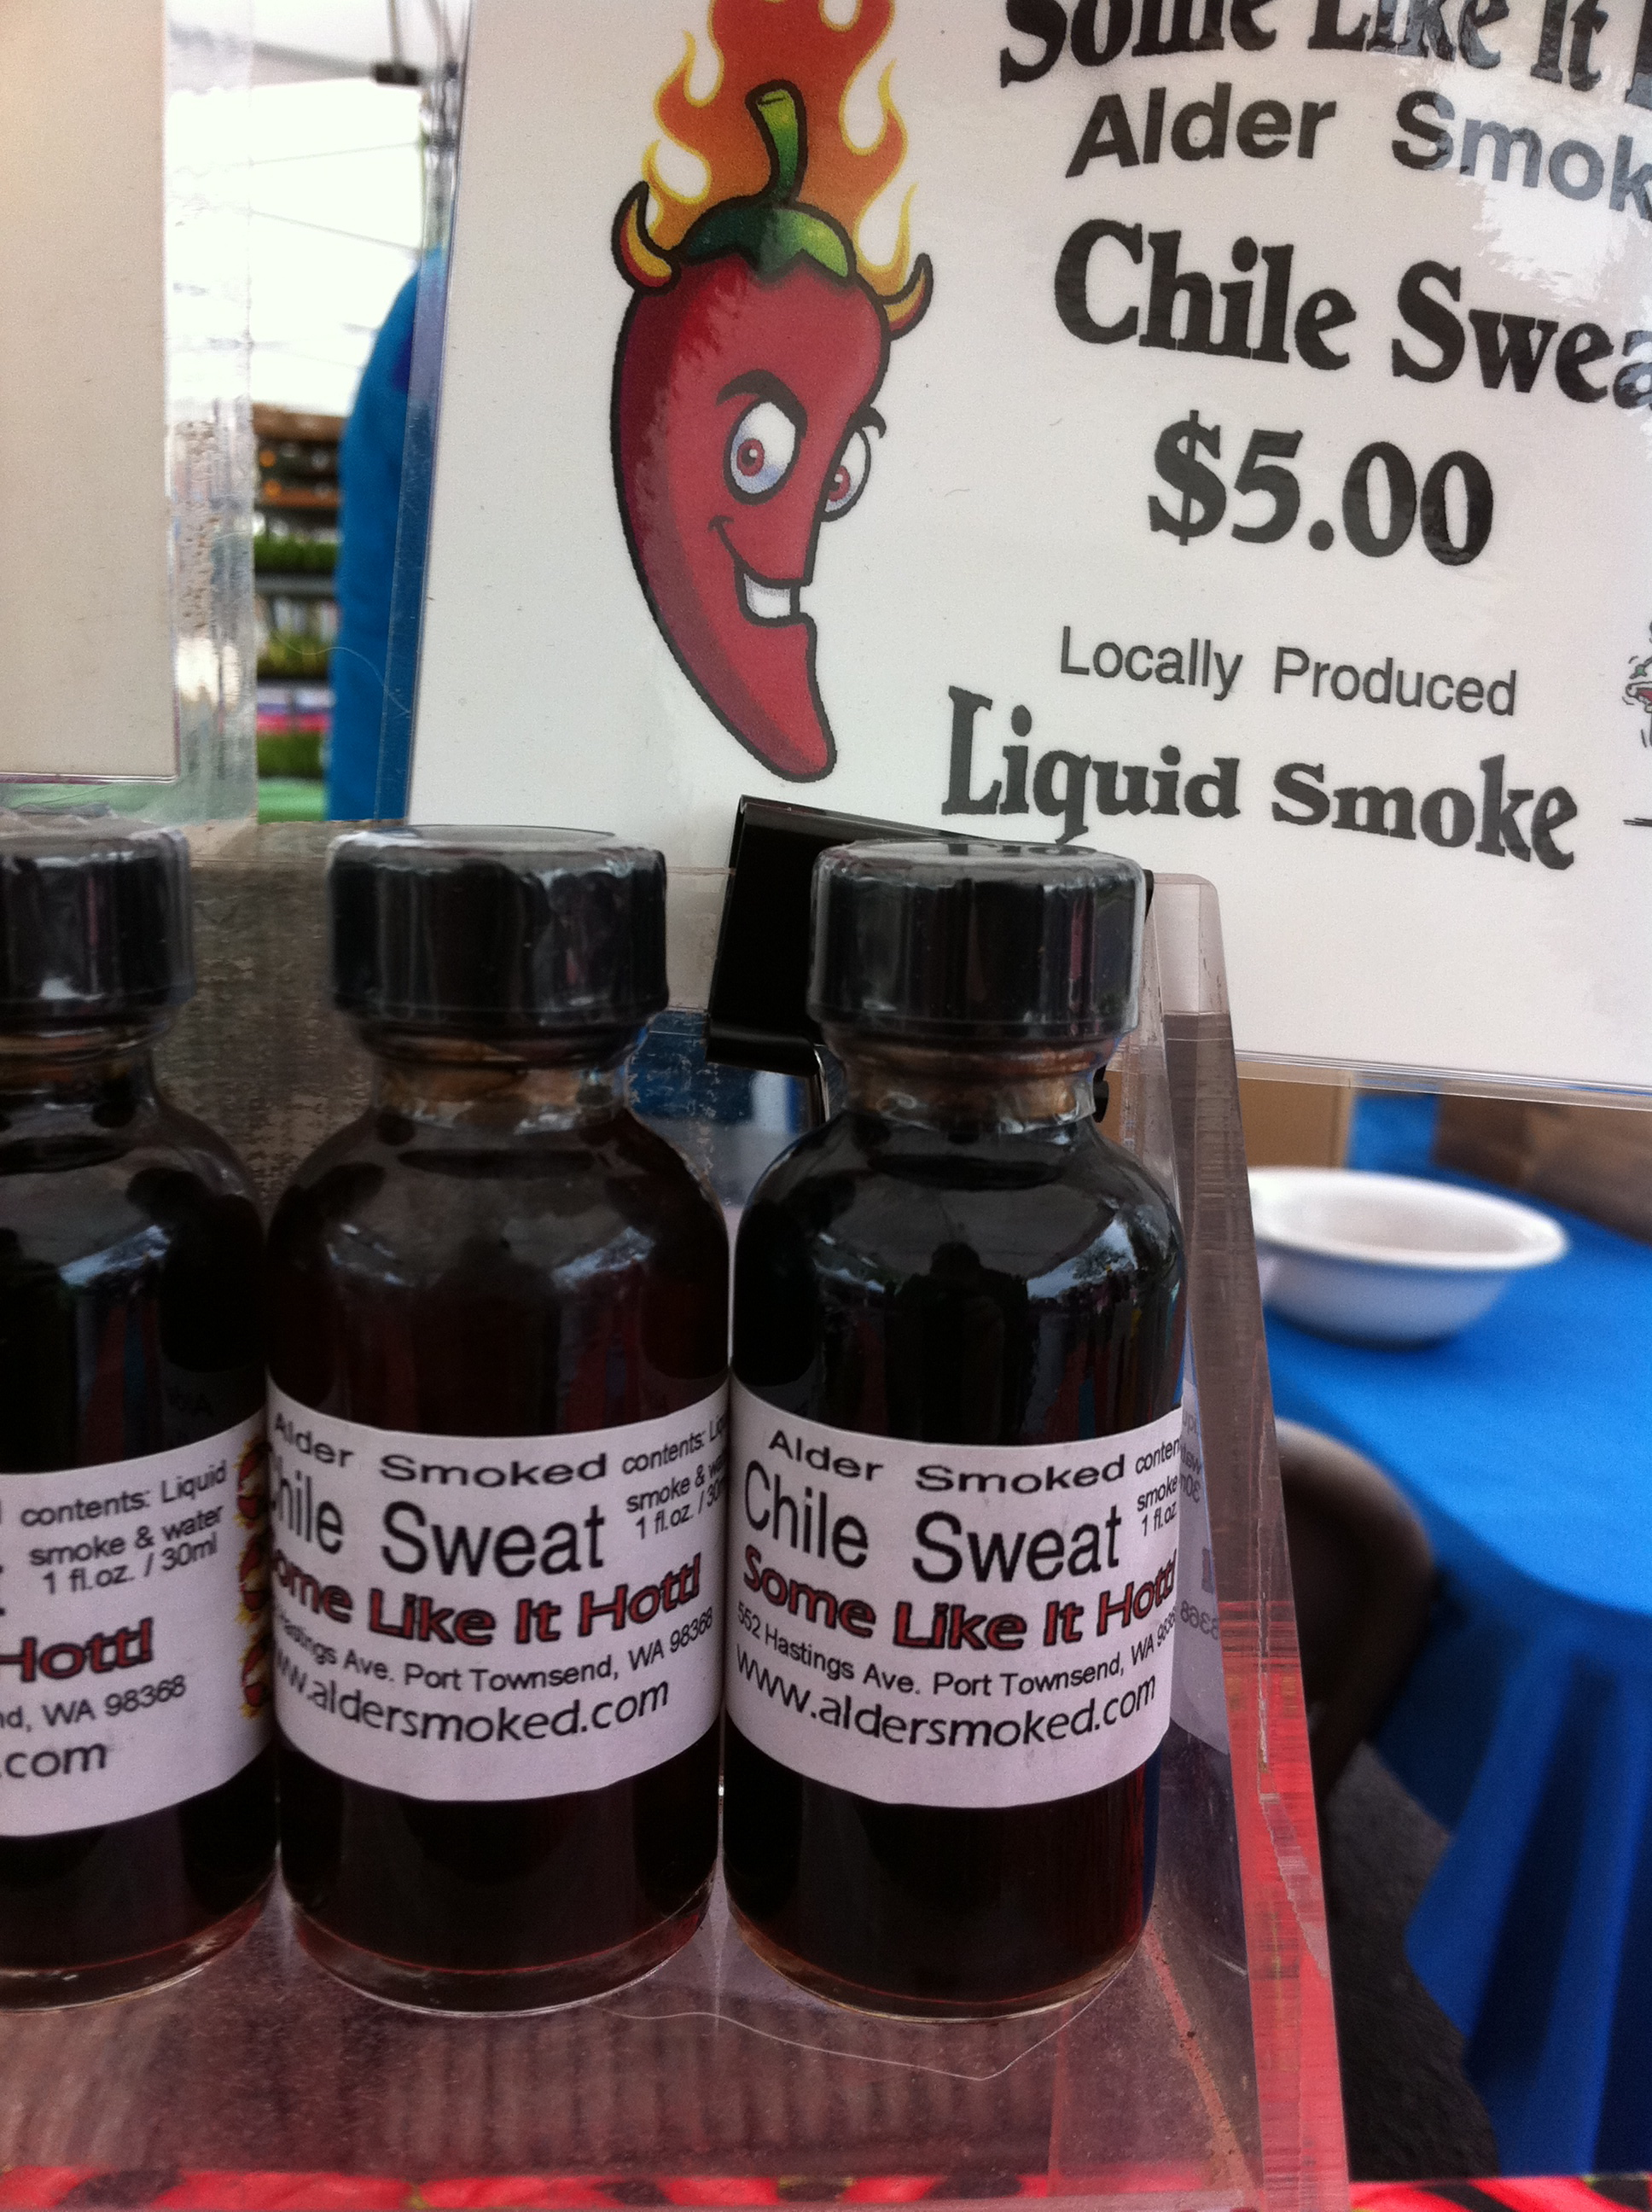 Charlie's Liquid Smoke